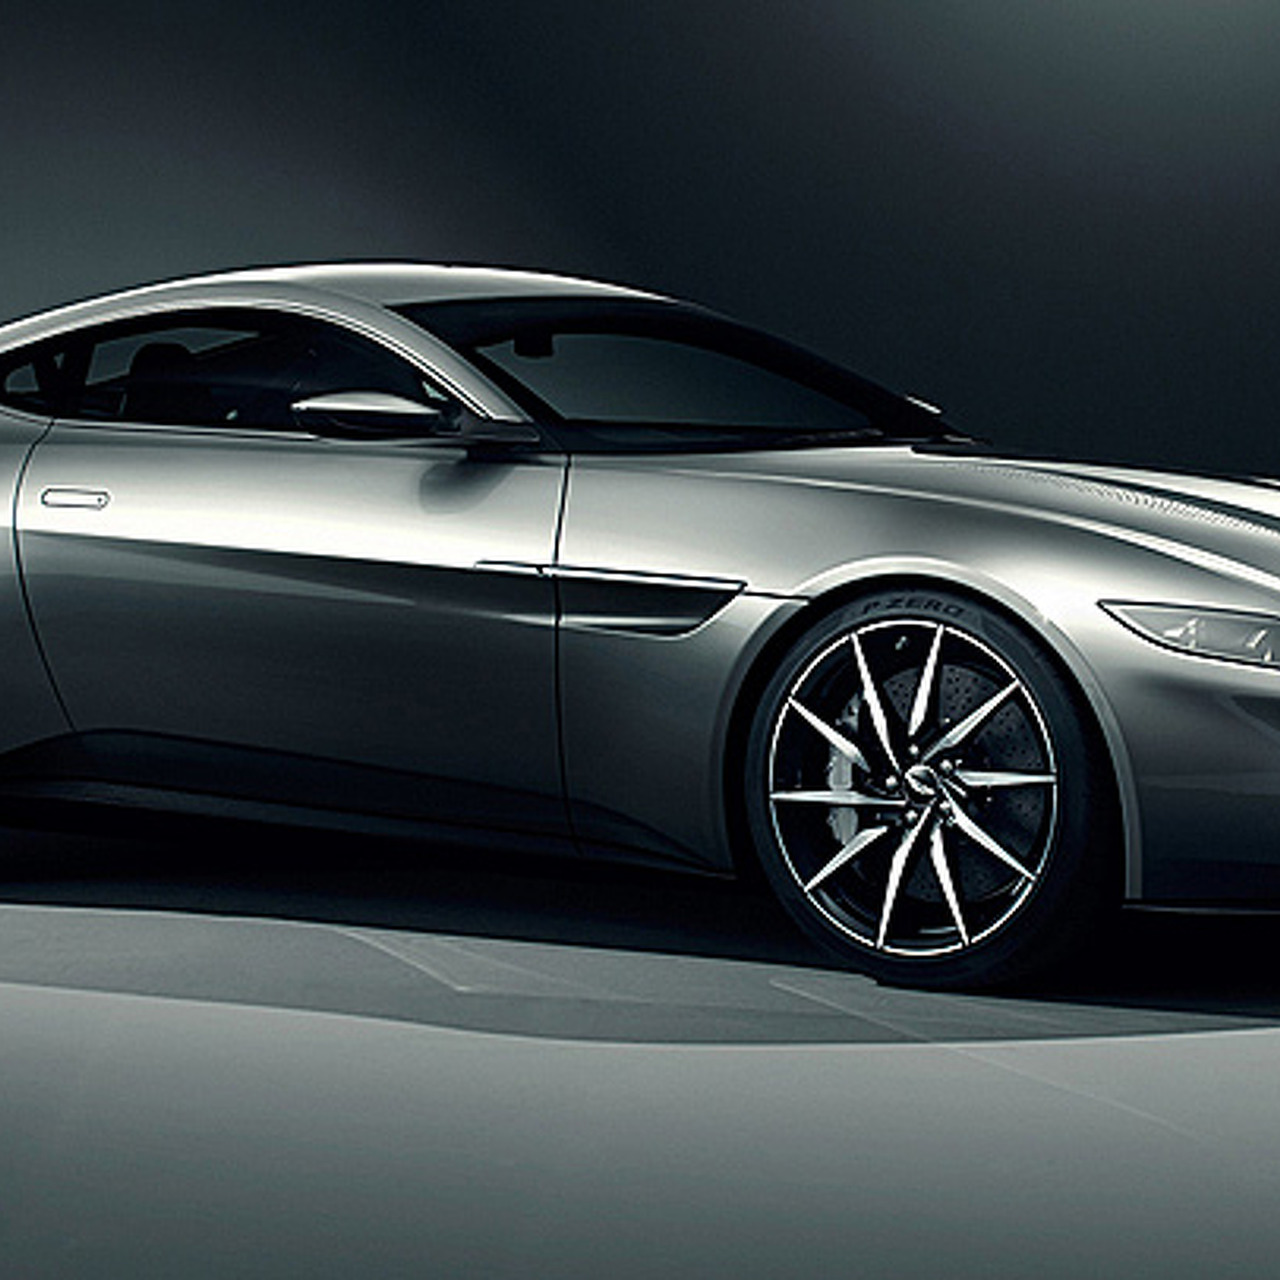 James Bond's Aston Martin DB10 Just Sold for $3.5 Million